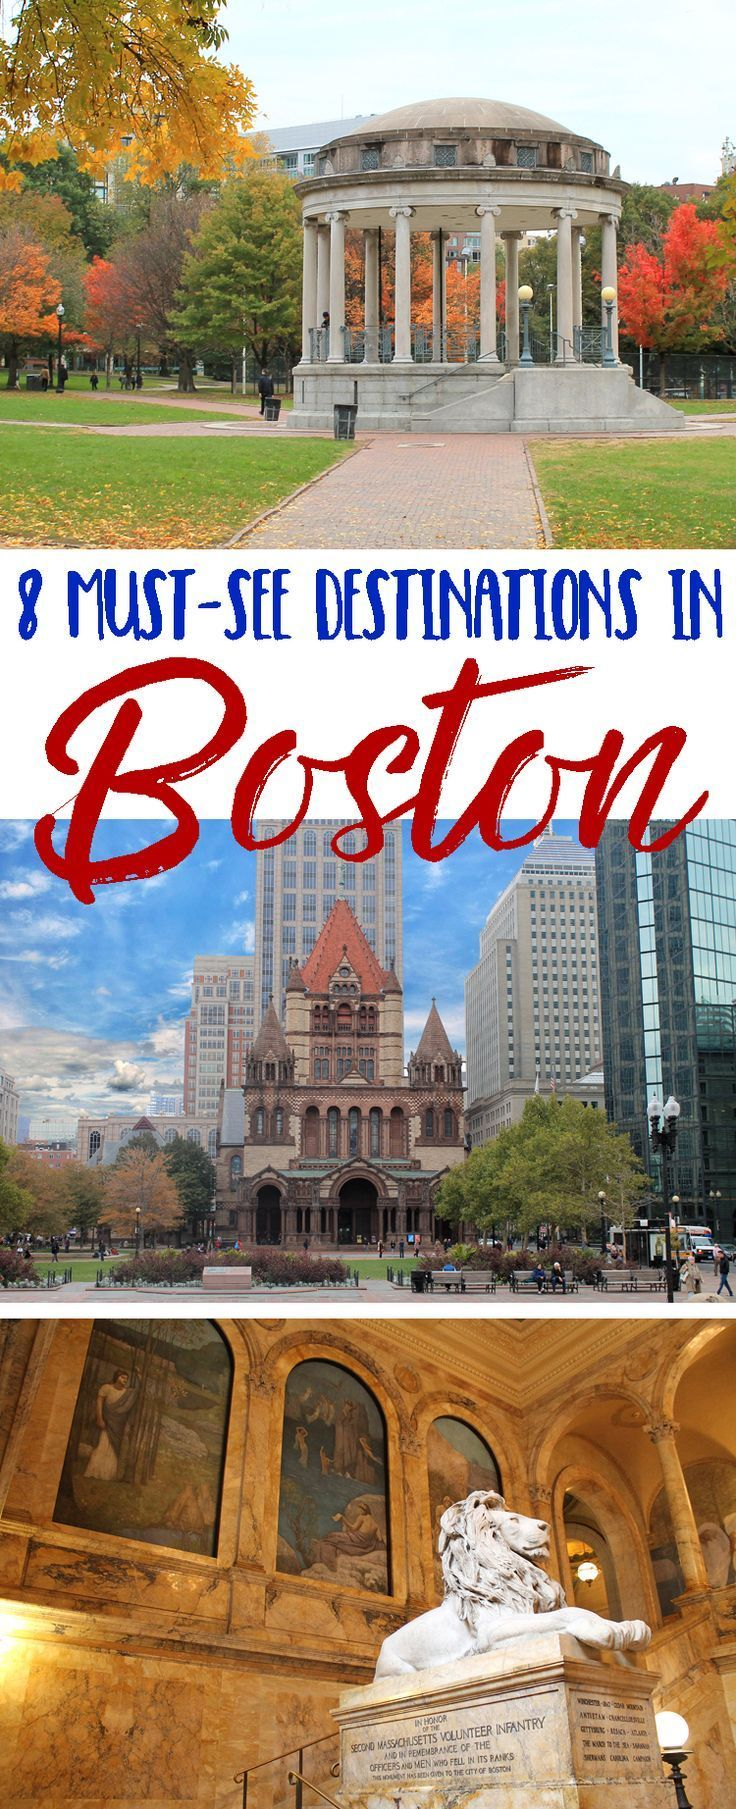 Travel tips and must-see destinations for planning a trip to Boston Massachusetts. This looks like an amazing vacation!